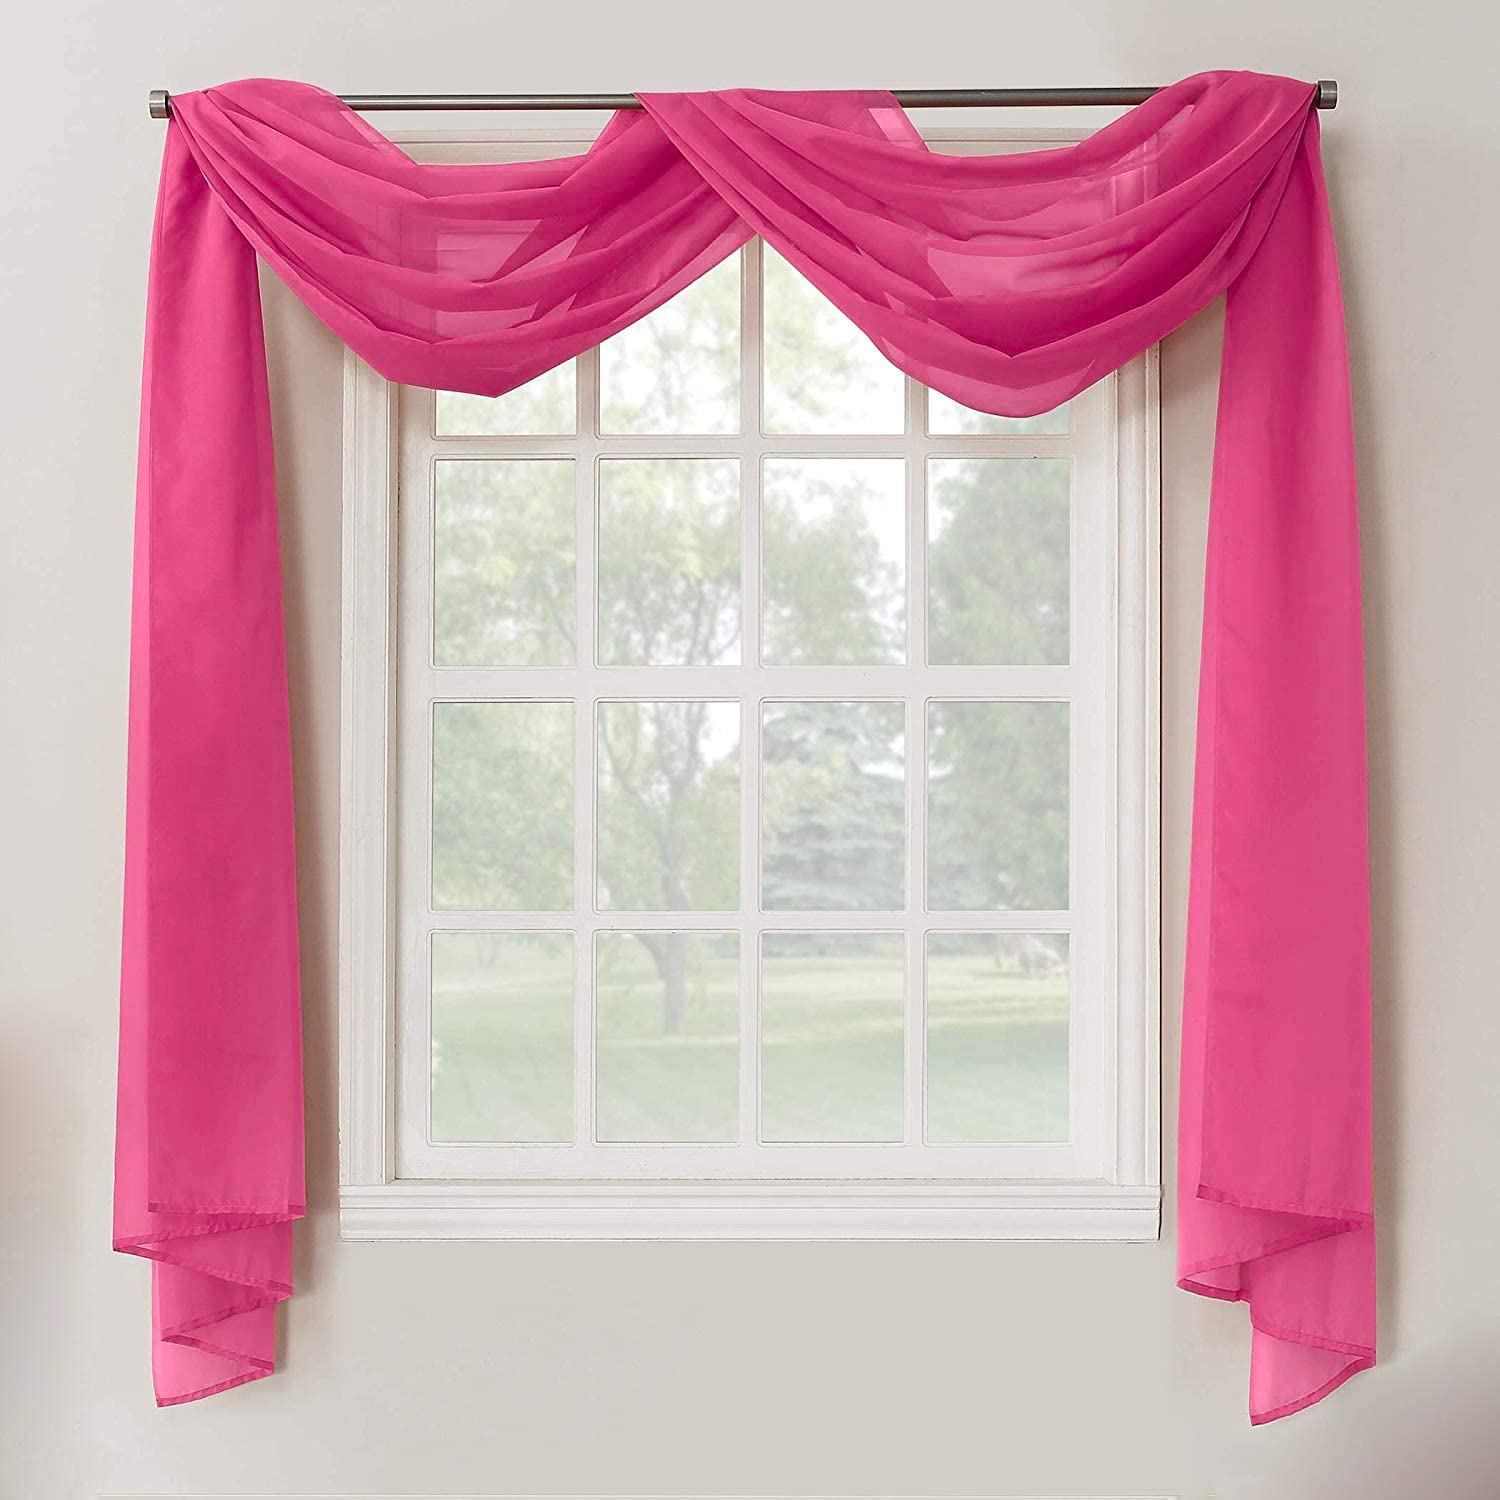 Decotex 1 Piece Sheer Voile Home Decor Fully Hemmed Scarf Valance Swag Topper (37